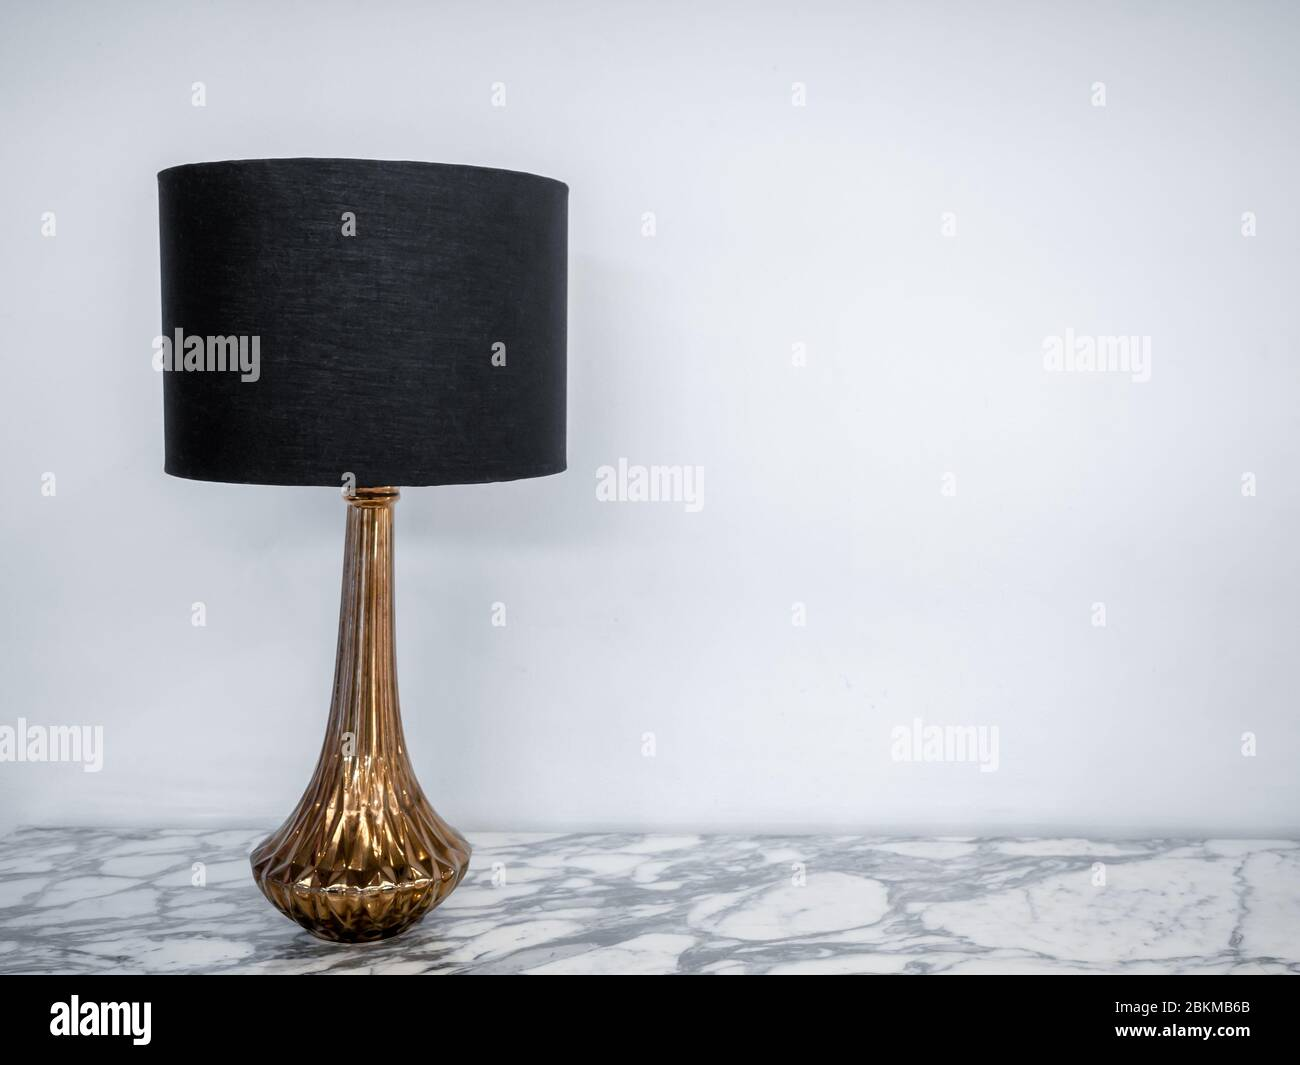 Vintage Table Lamp On Marble Table Luxury Lamp Designed With Black Fabric And Gold On White Background With Copy Space Stock Photo Alamy